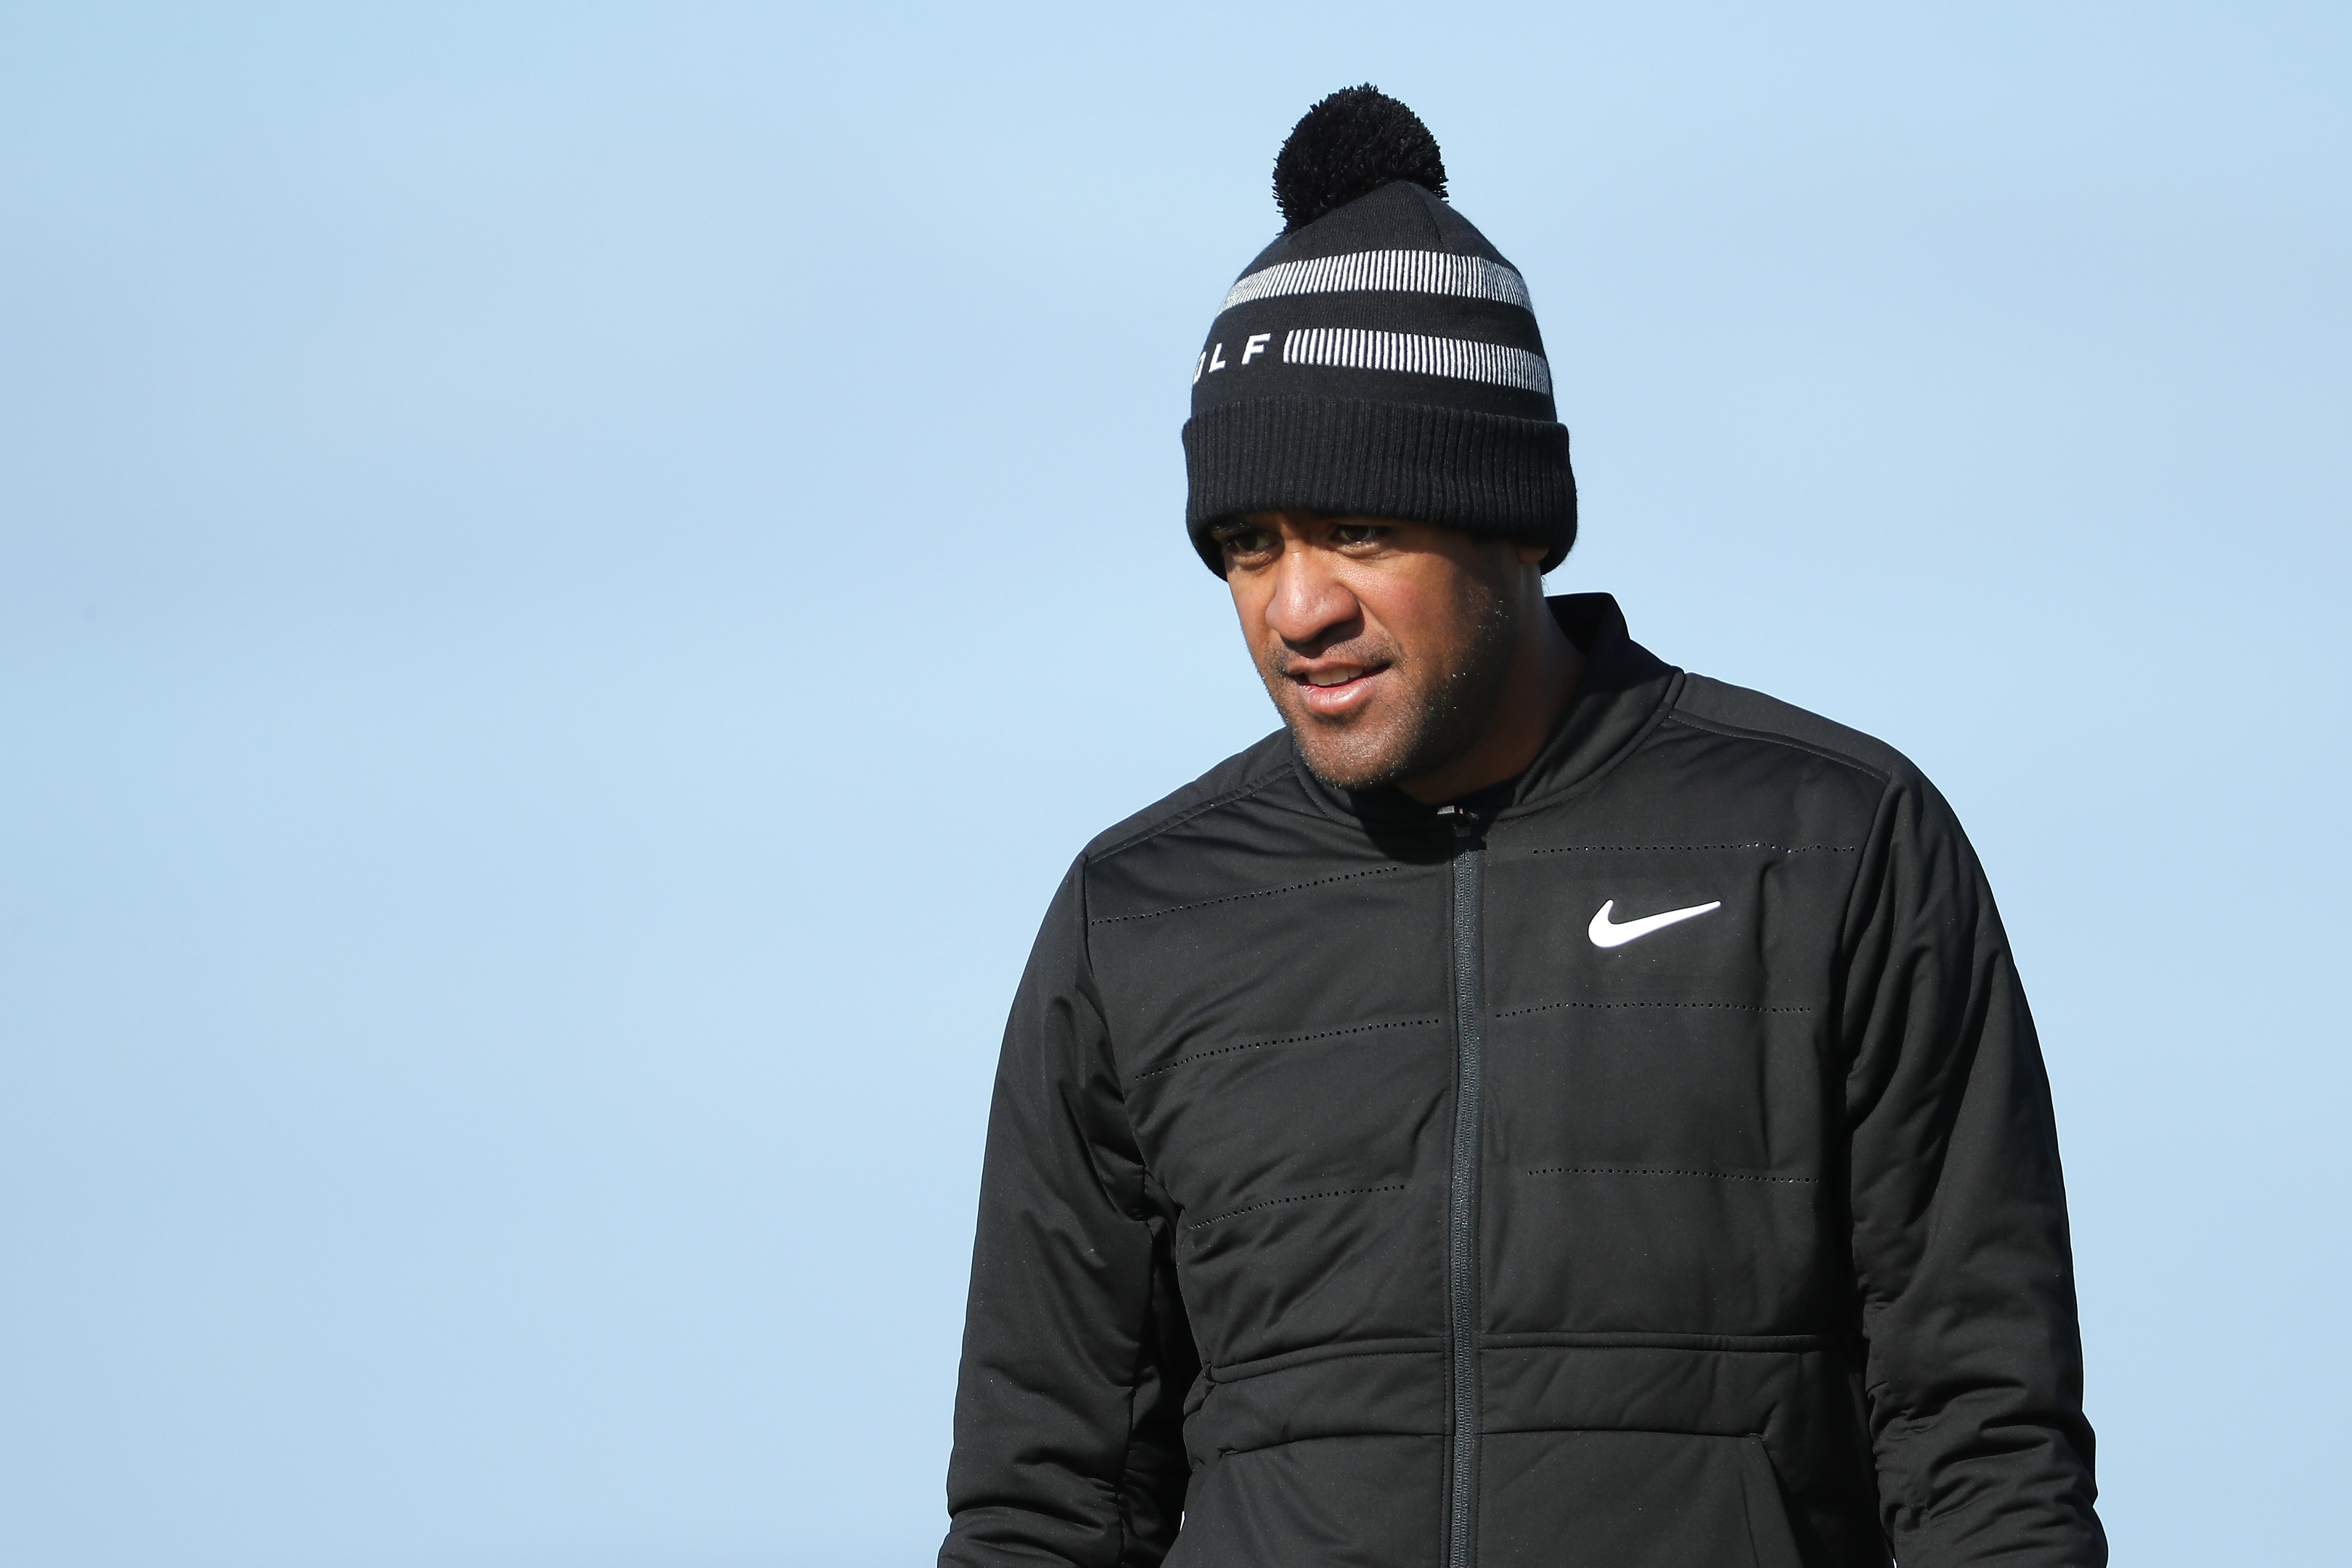 Tony Finau is enthralled by his first visit to St Andrews